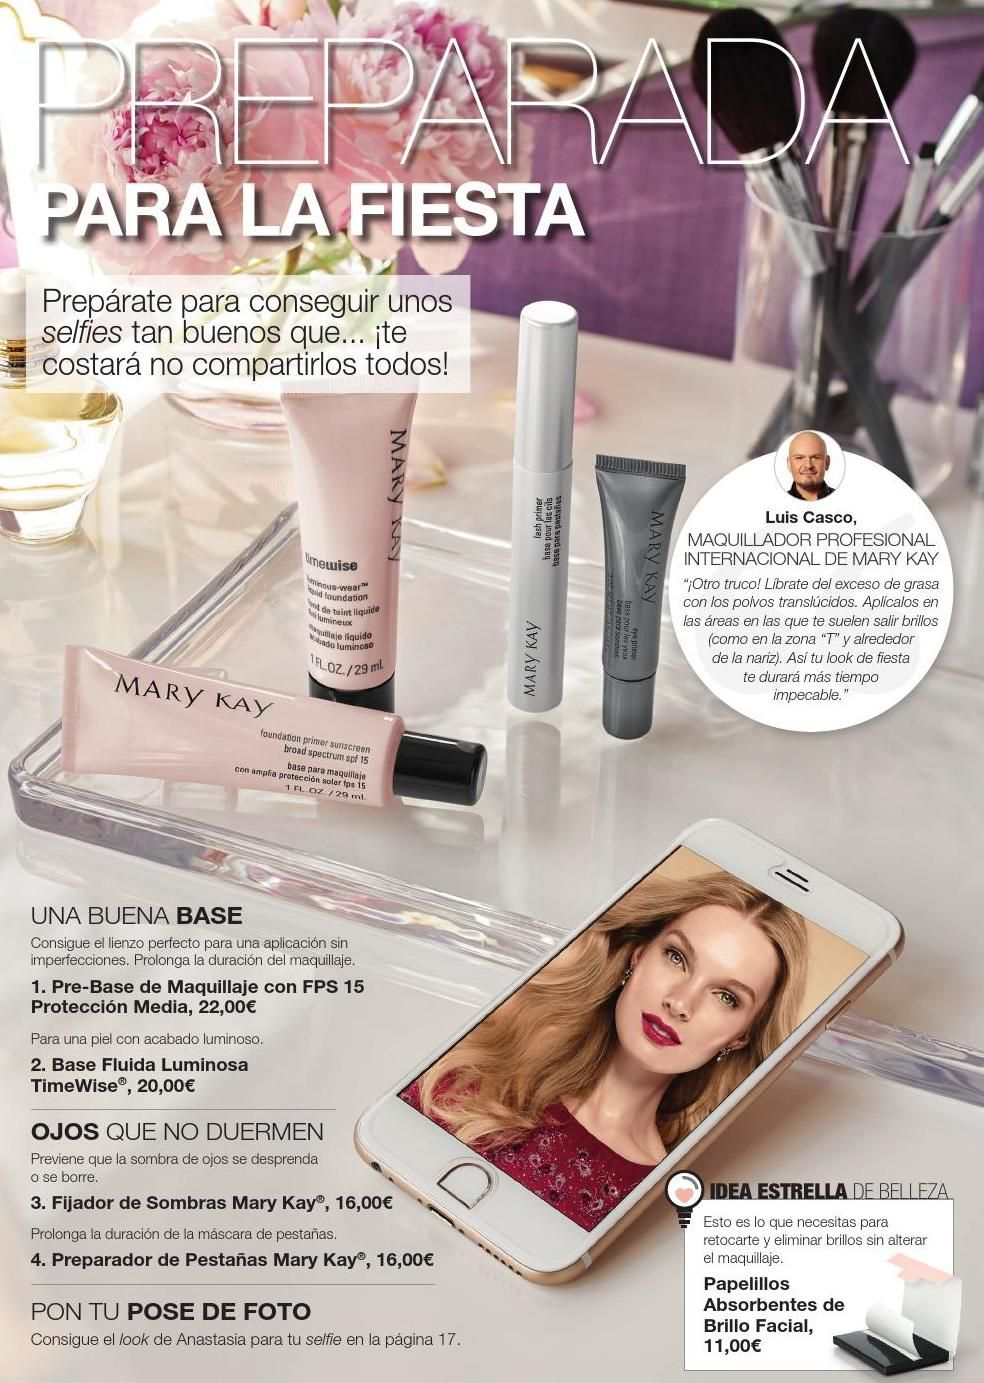 Libros De Maquillaje Profesional Belleza De España New Book The Look February 15 16 Mary Kay